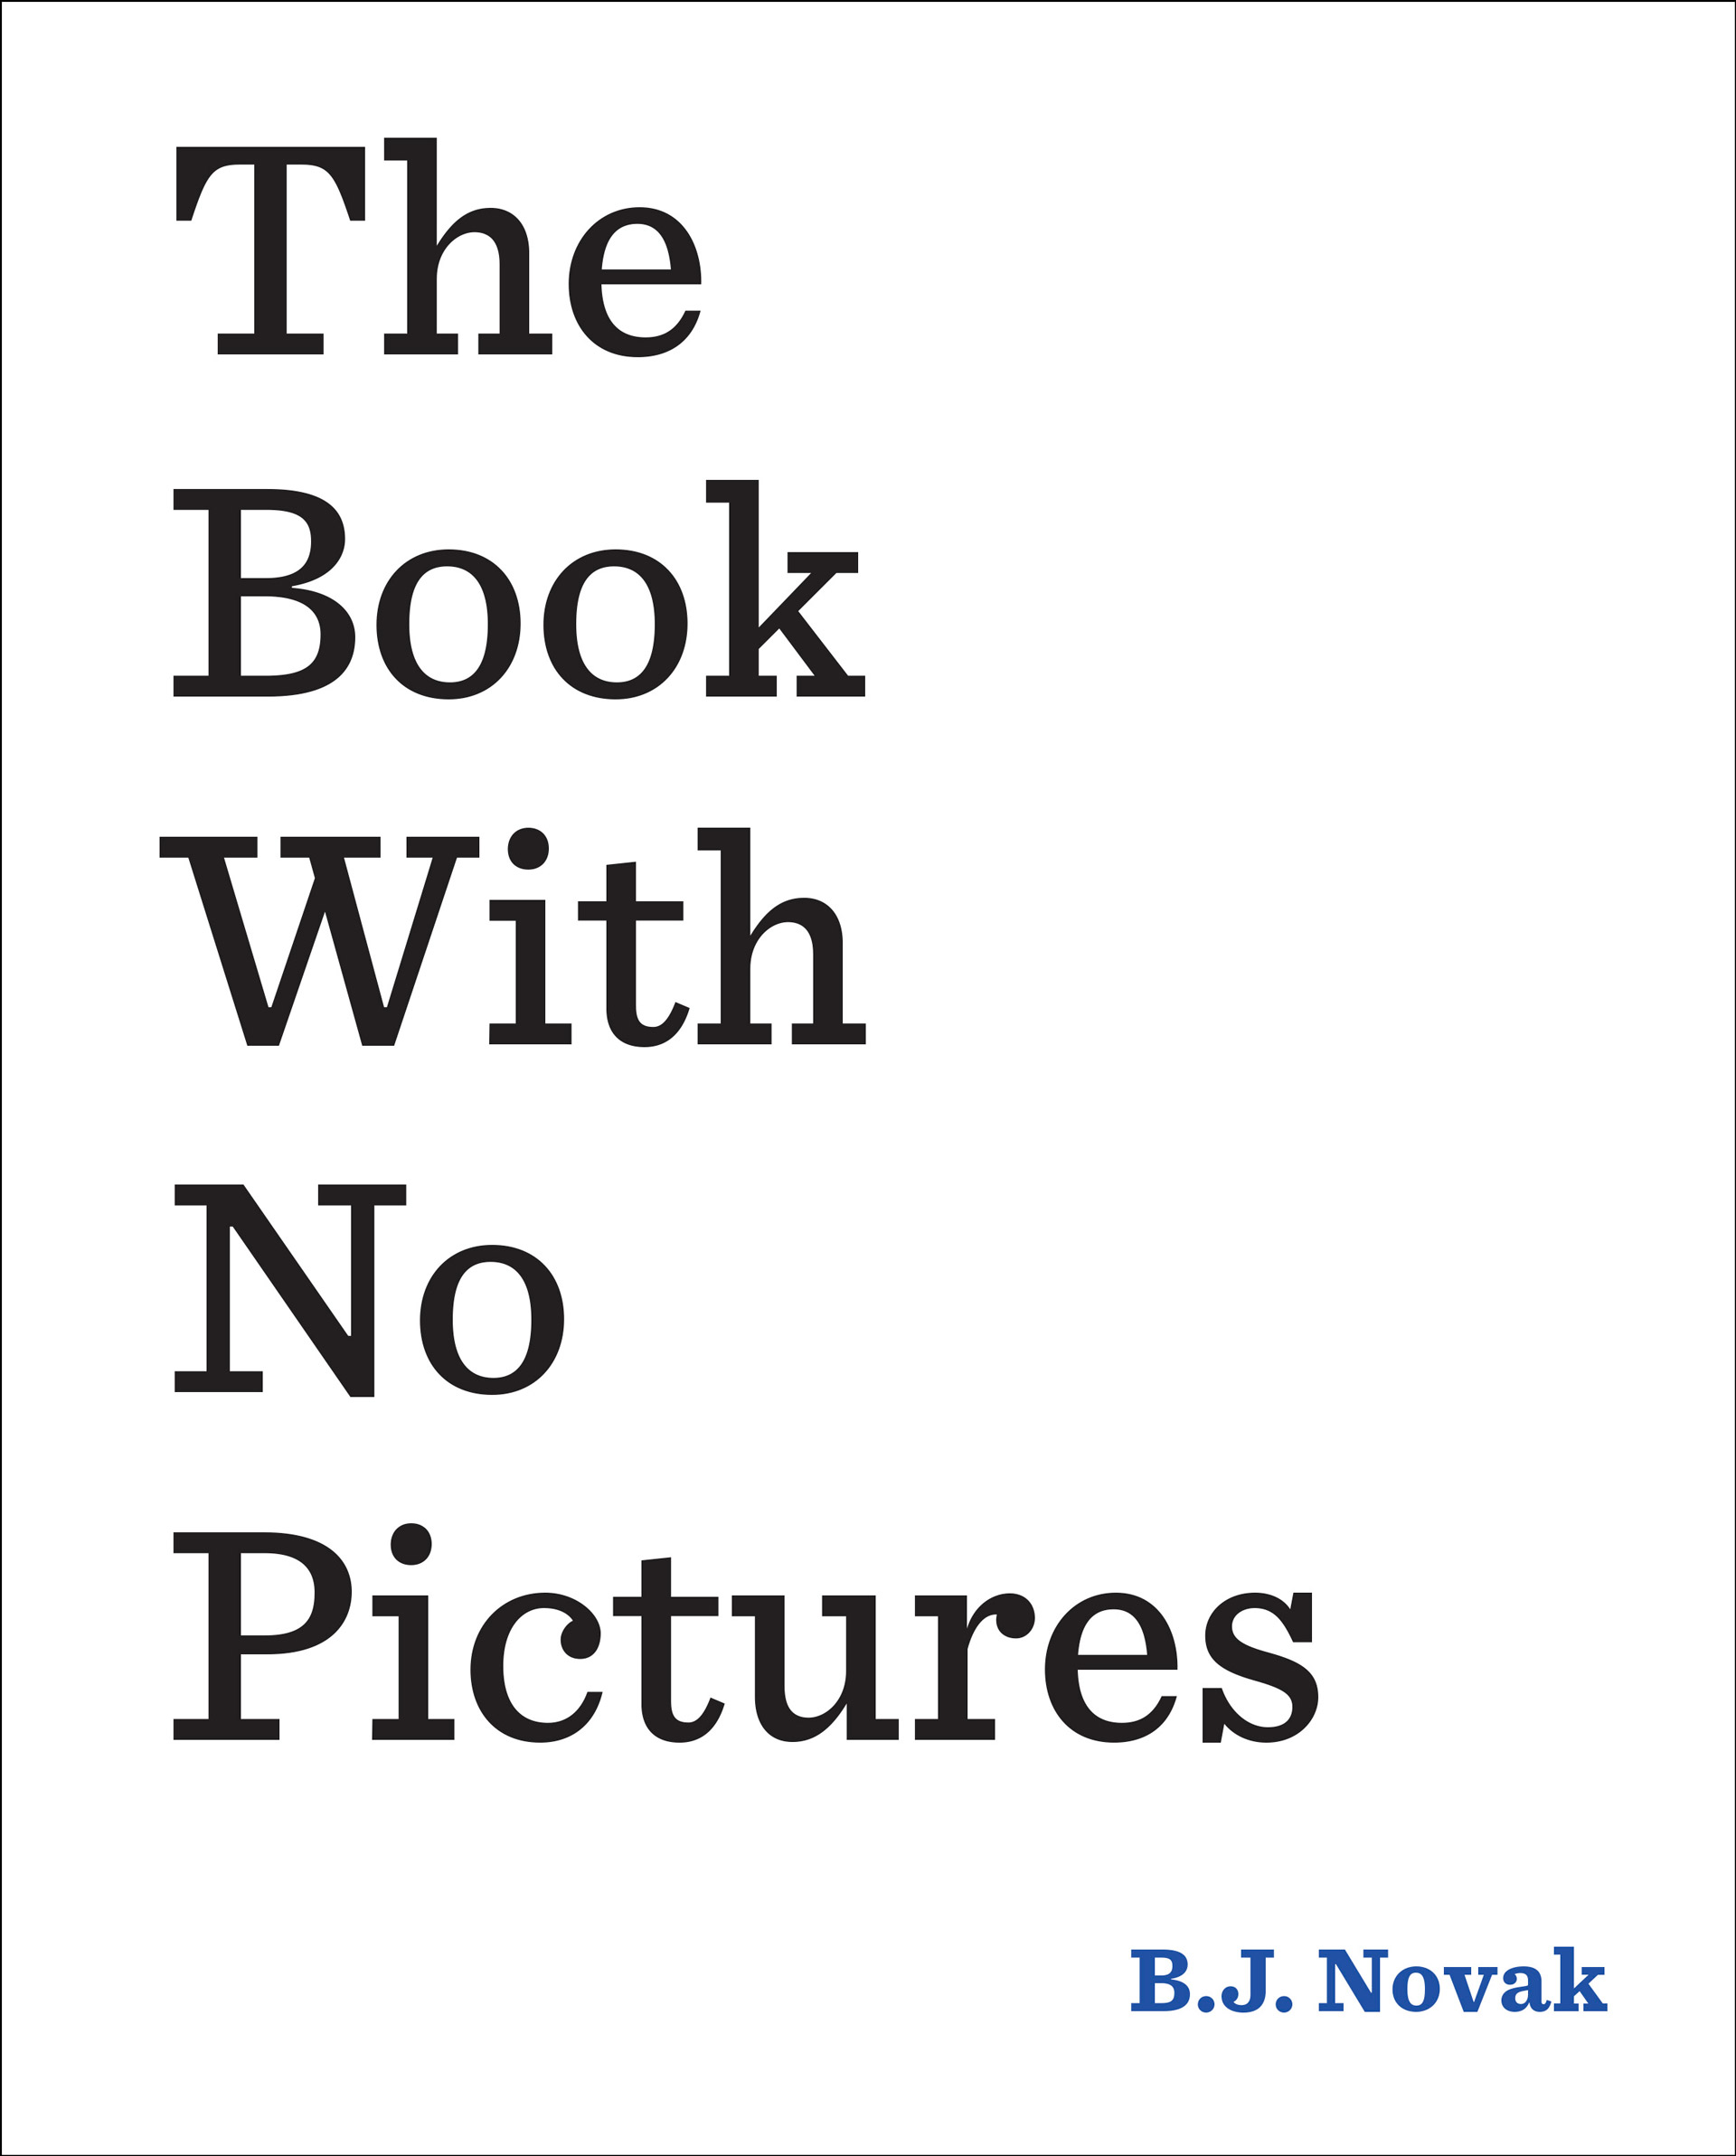 Book with no pictures cover | Sheknows.com